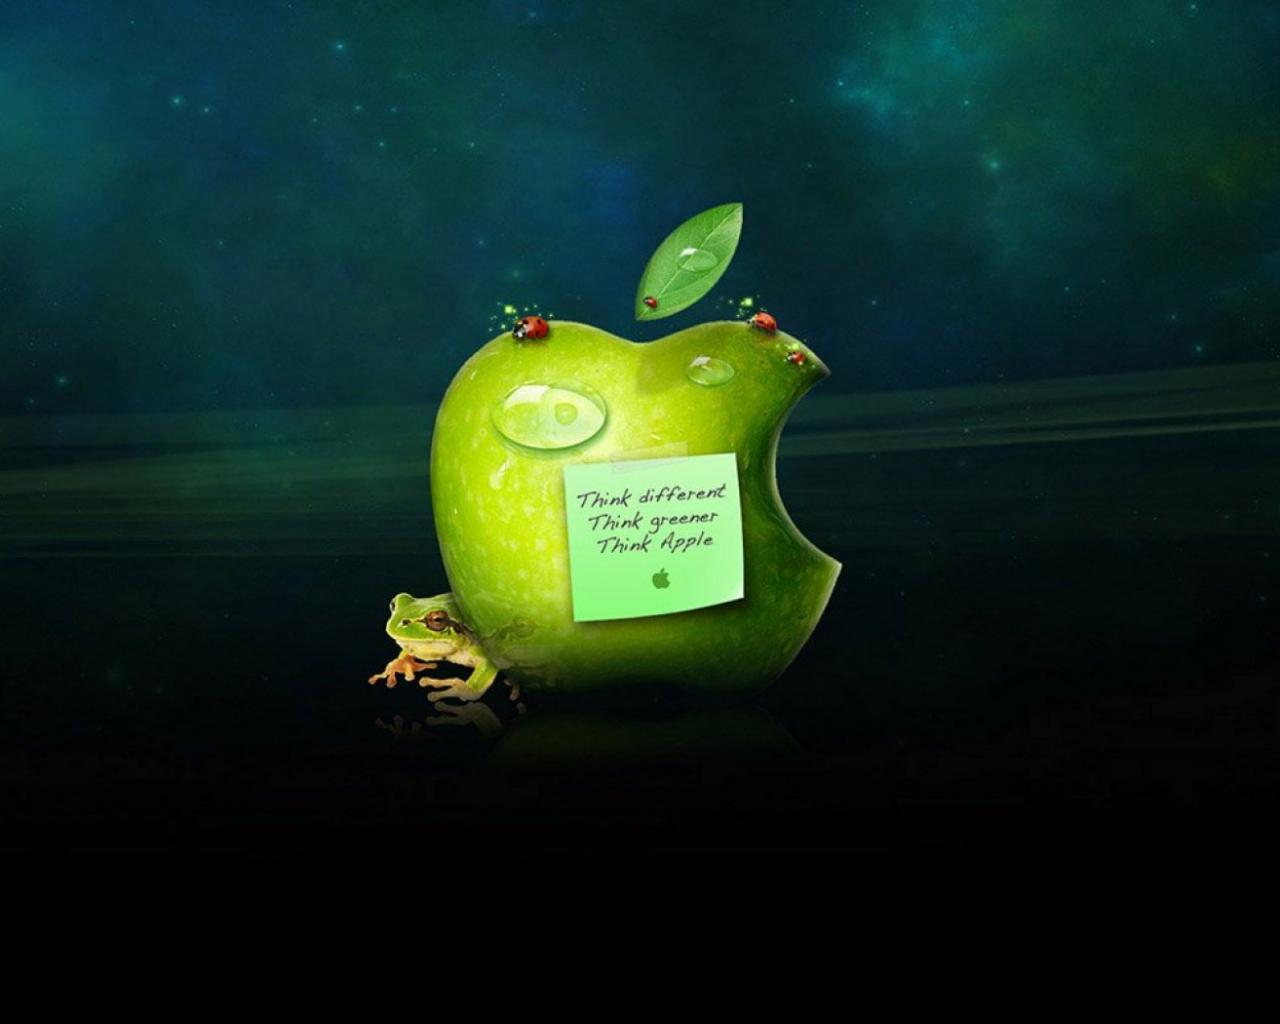 Apple logo and frog 1280x1024